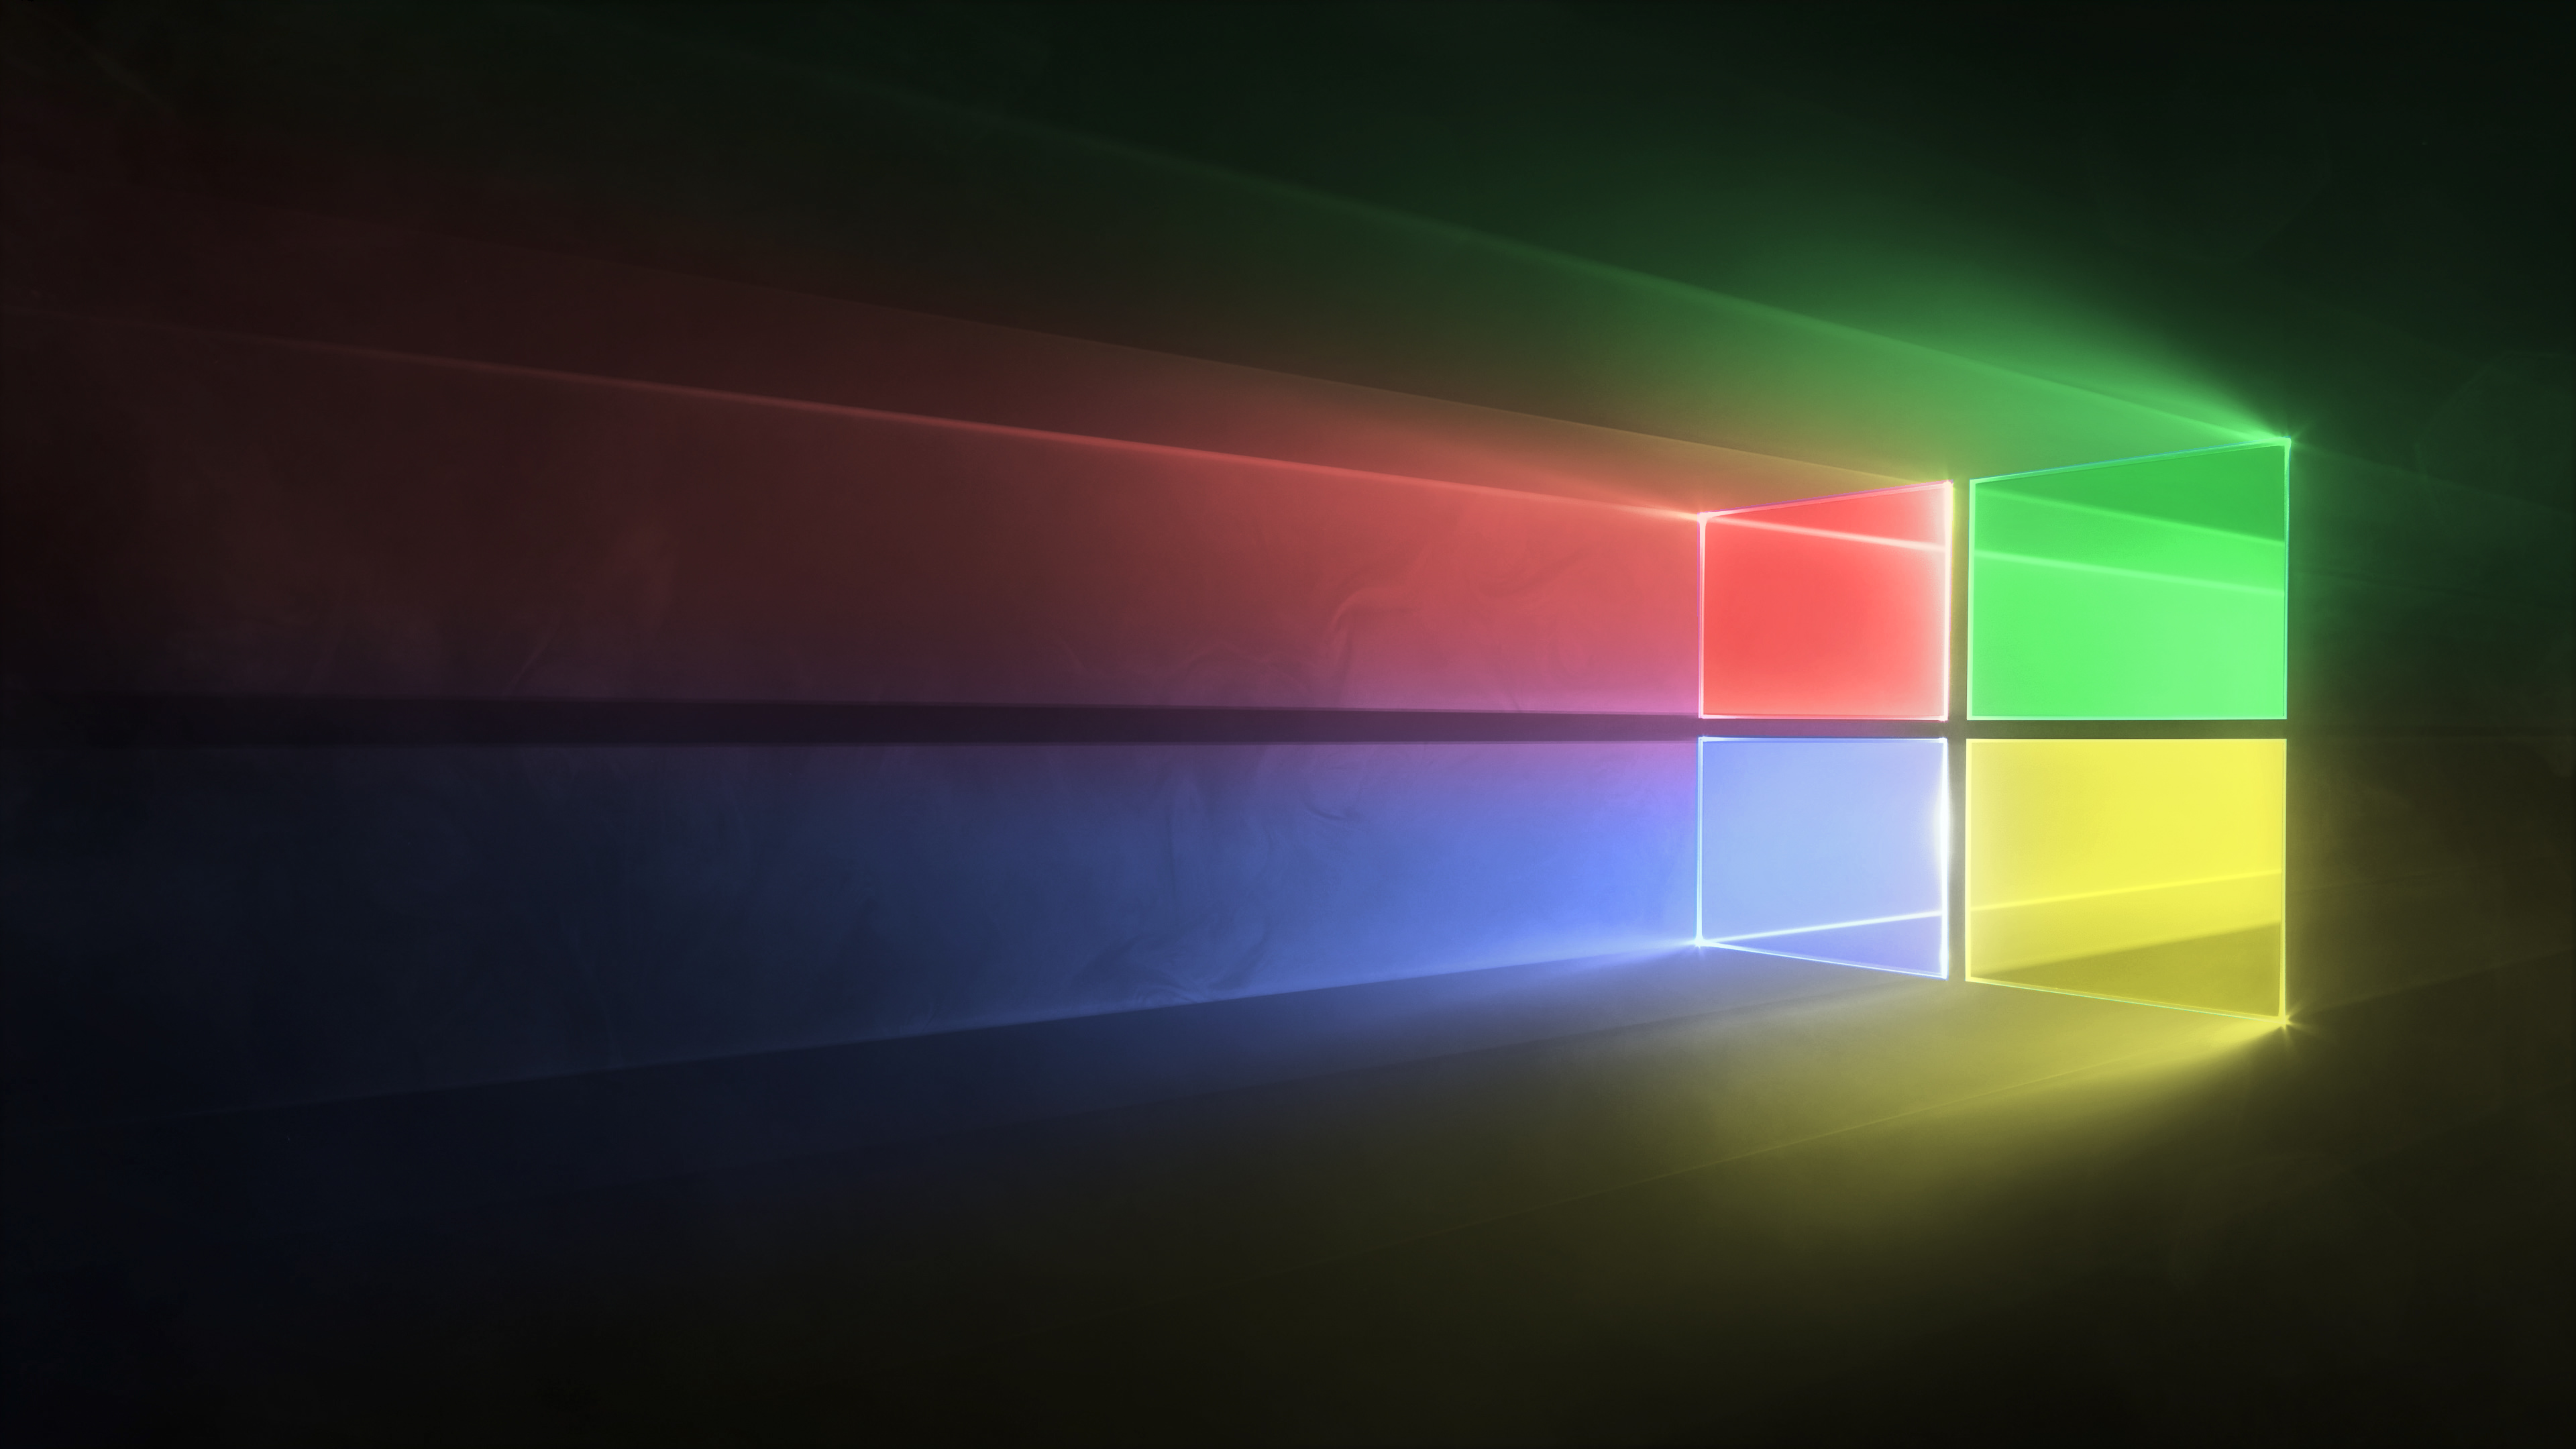 1600x900 Windows 10 Abstract 4k 1600x900 Resolution Hd 4k